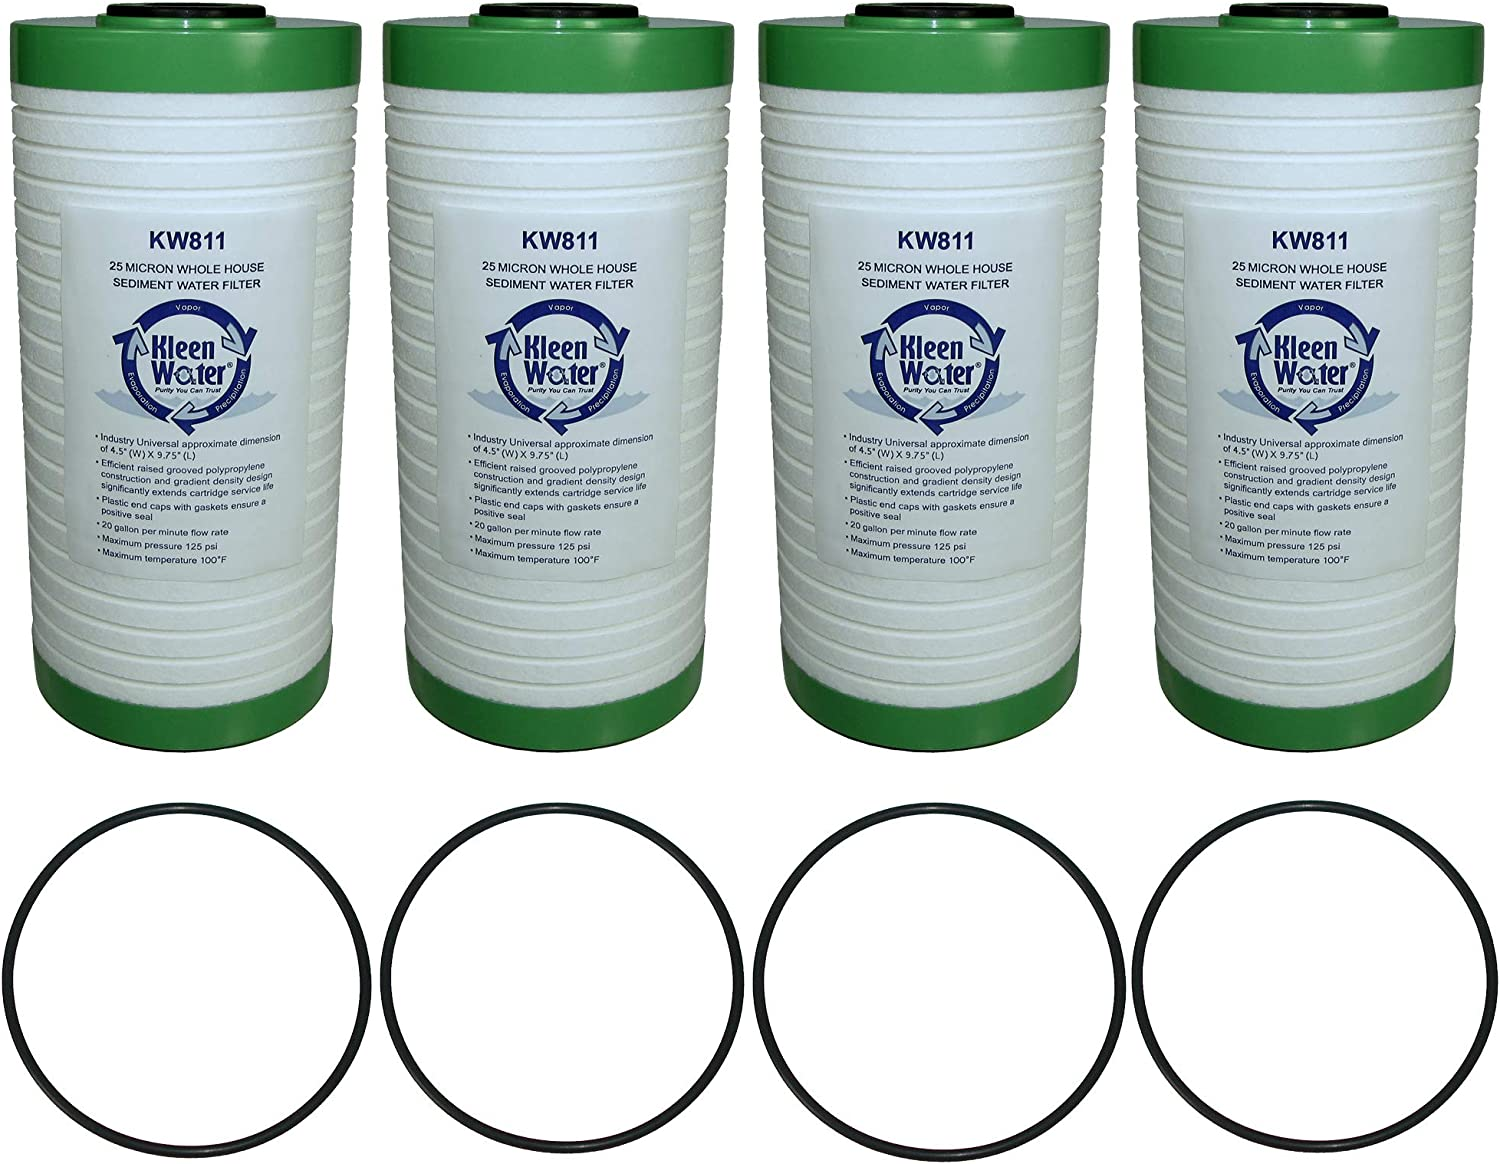 25 Micron Rust and Sediment Water Filter Cartridges 4.5 X 10 Inch KleenWater KW811 Replacement Dirt Pack of 4 Filters with 4 O-rings AO-WH-PREL and WHKF-GD25BB Compatible Filter